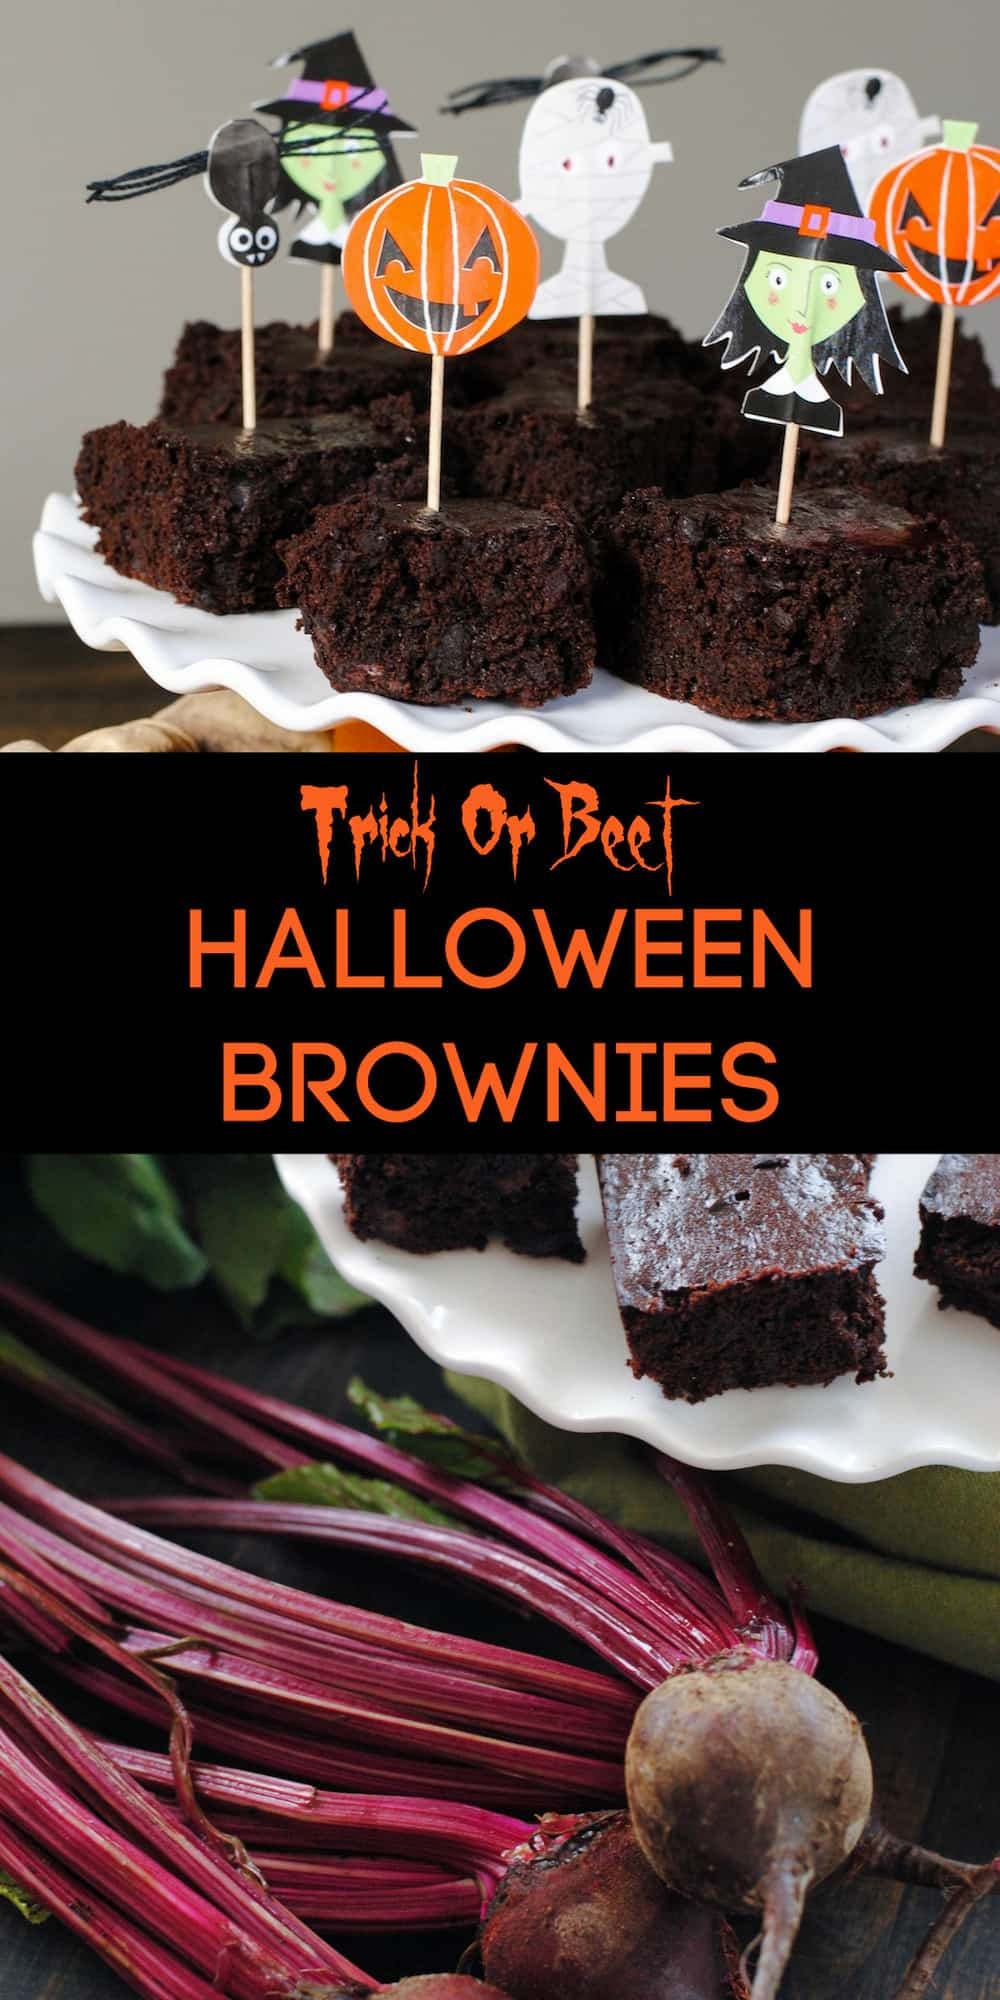 Collage of brownie and beet photos with overlay: Trick or Beet HALLOWEEN BROWNIES.